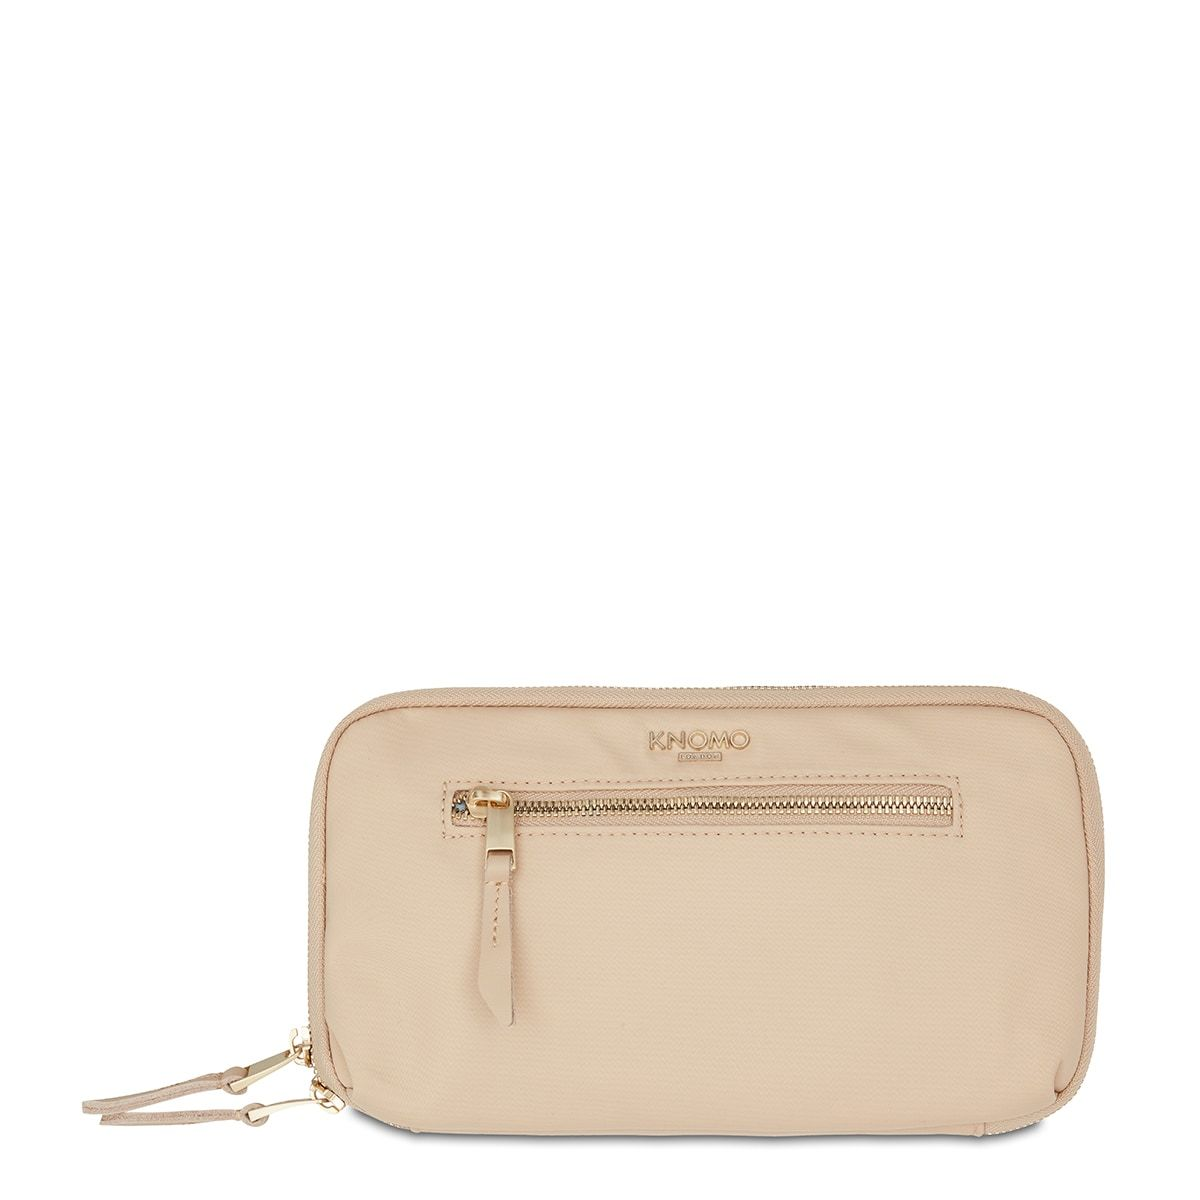 "KNOMO Knomad Travel Wallet Travel Organiser From Front 8"" -  Trench Beige 